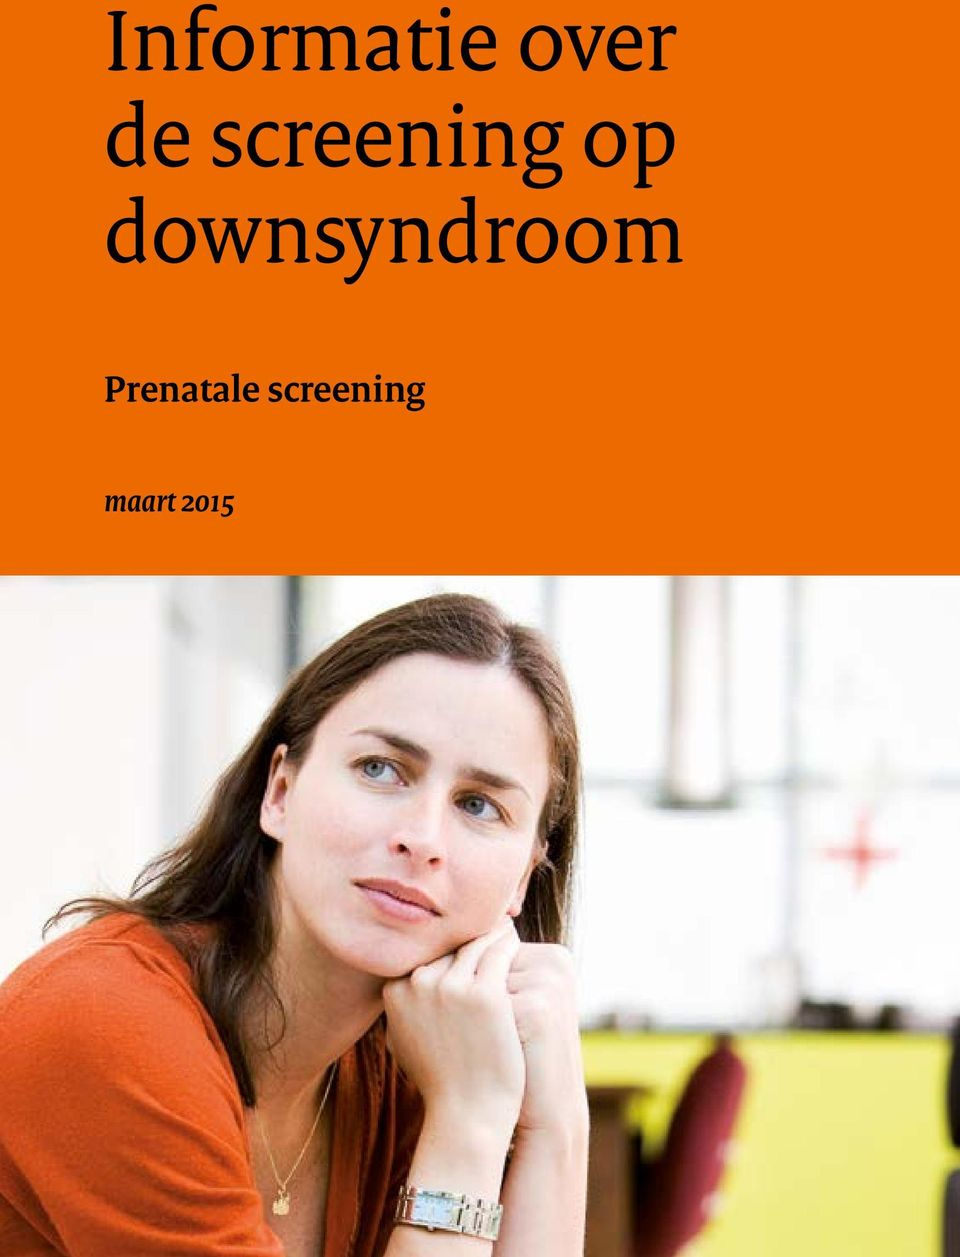 downsyndroom